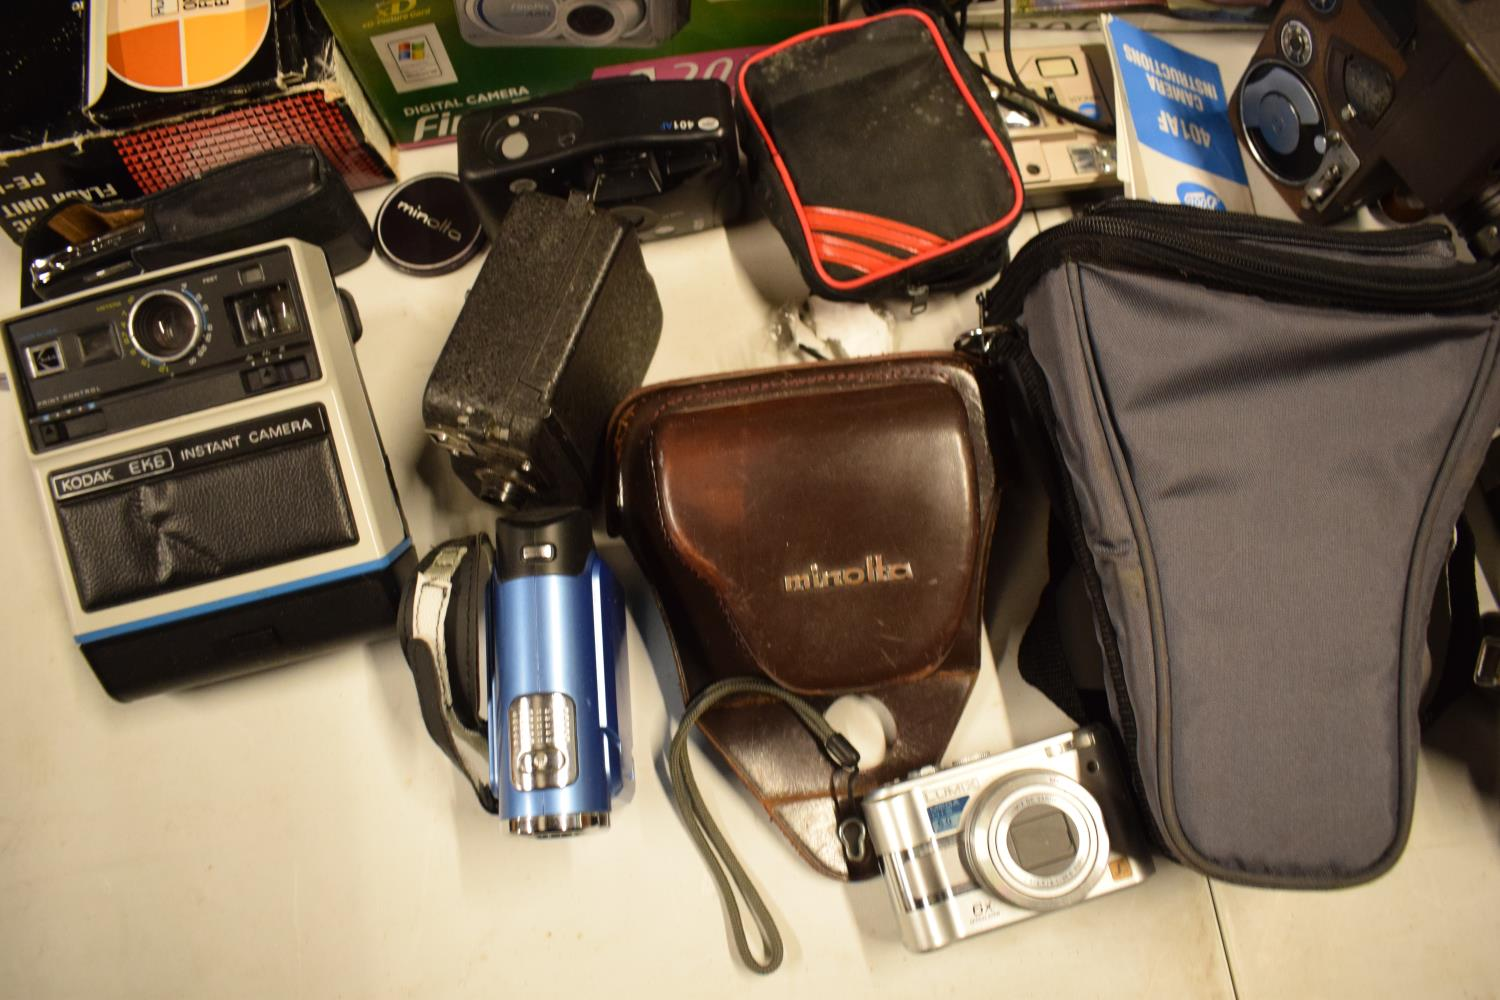 A mixed collection of cameras and accessories to include Kodak, Canon, JVC etc Condition is mixed. - Image 4 of 7